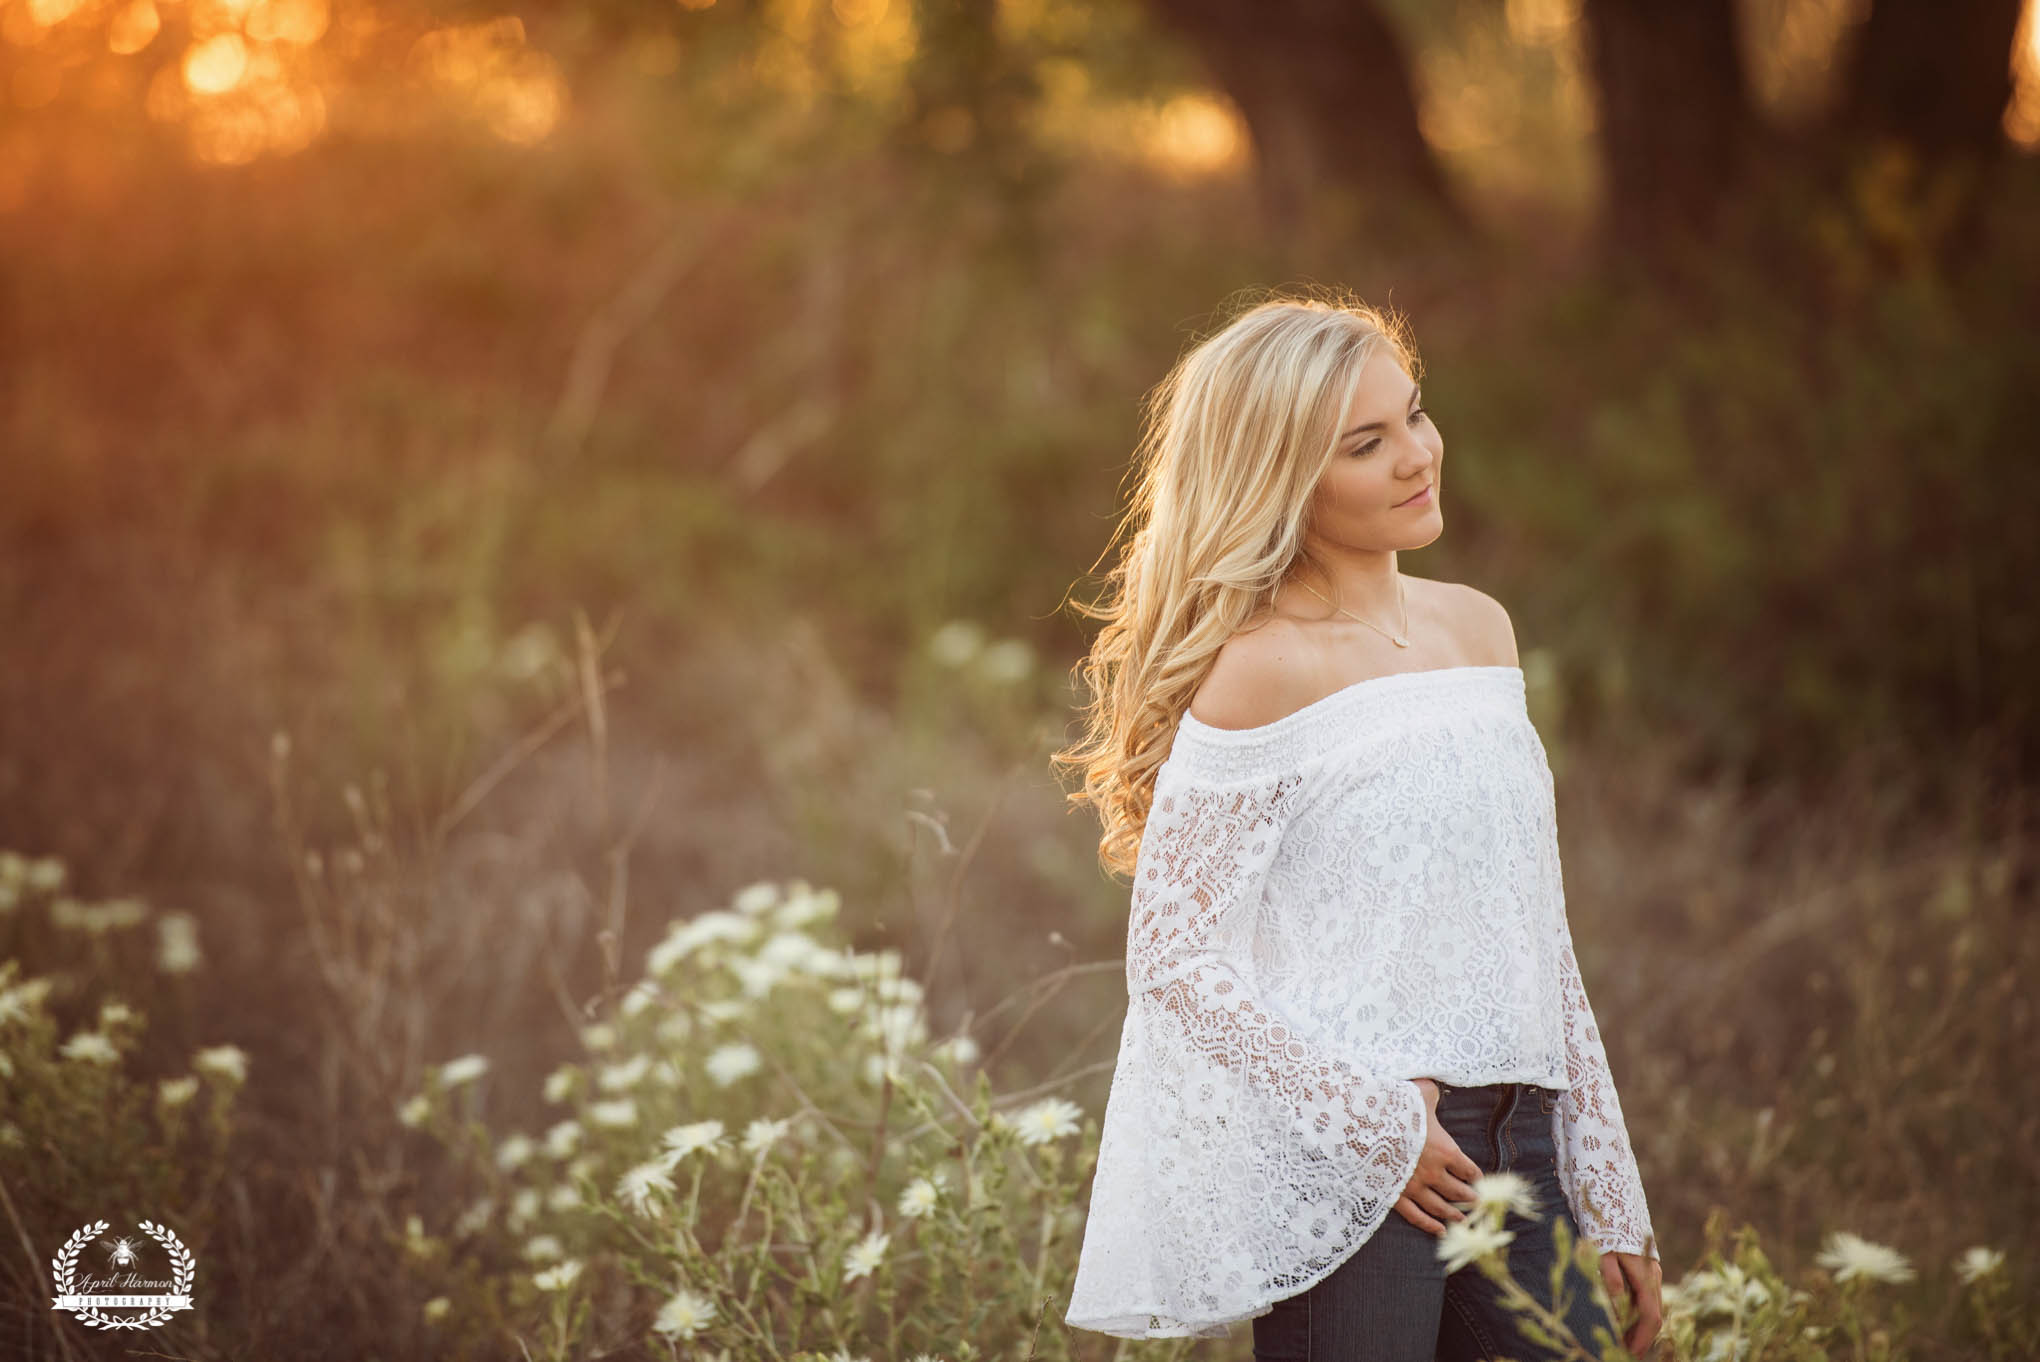 southwest-kansas-senior-photography74.jpg